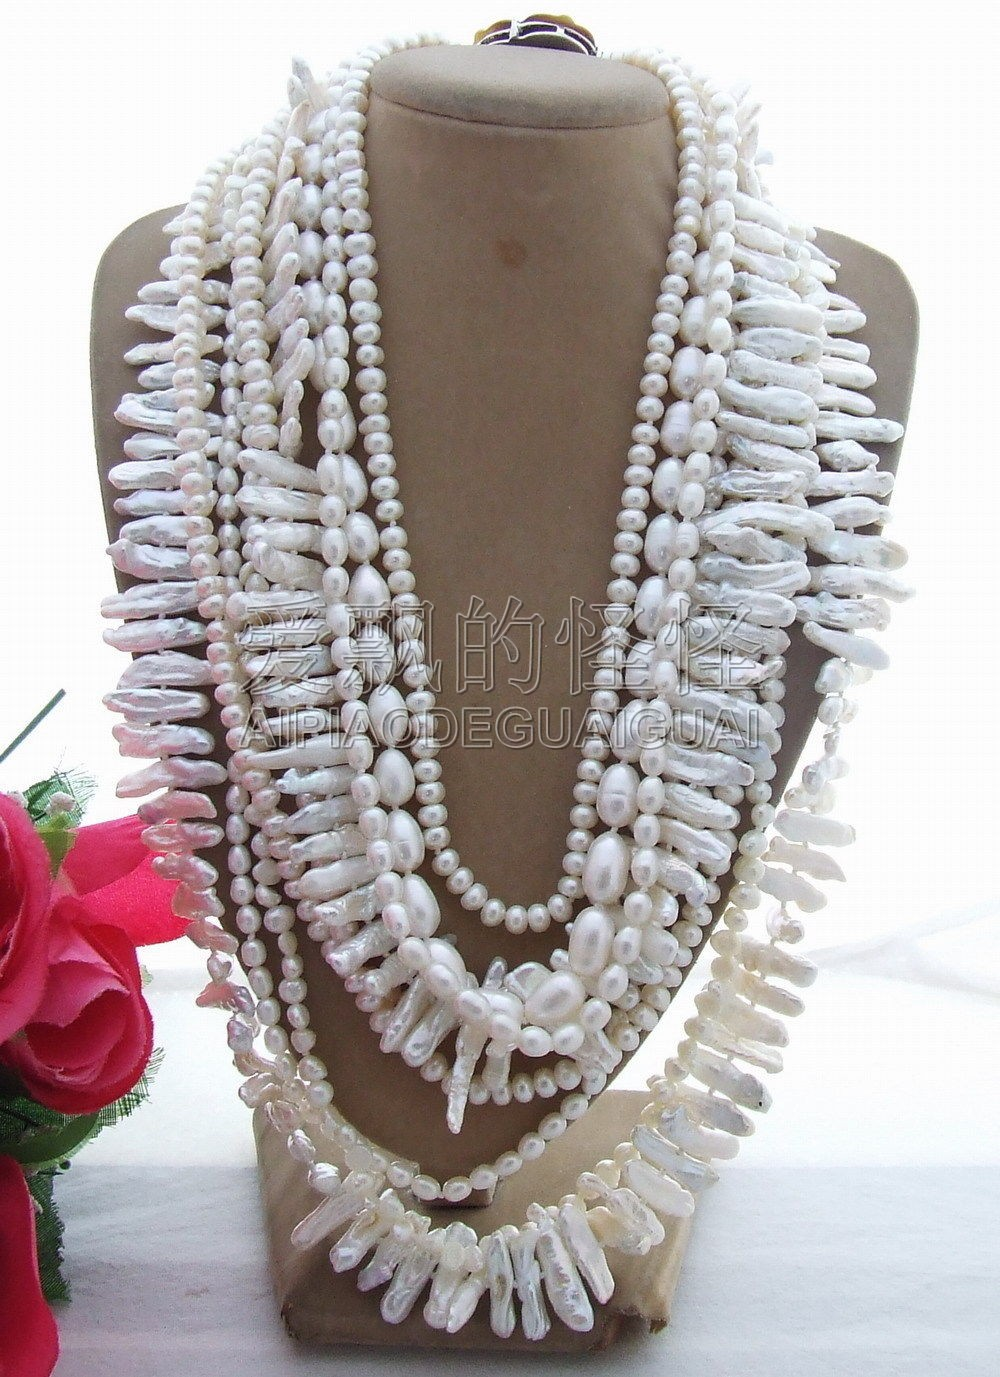 N130619 9Strands Multi Shape Pearl NecklaceN130619 9Strands Multi Shape Pearl Necklace